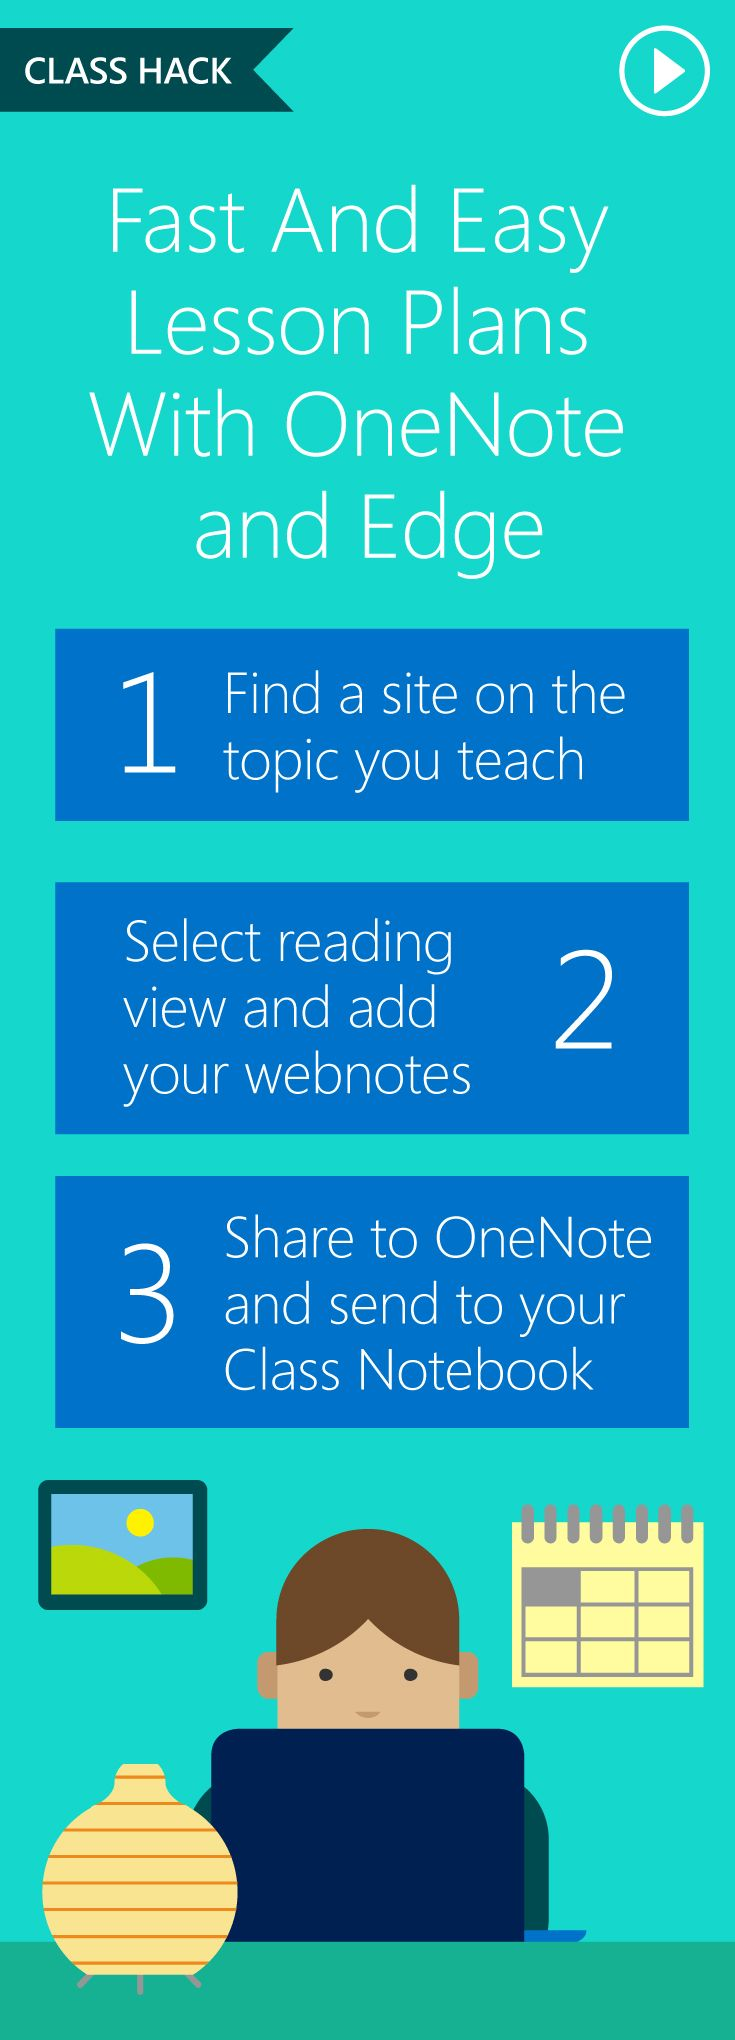 Save time in your classroom with our #ClassHack series! Quick tips created by teachers, for teachers. Pin this resource to discover them all! #MSFTEDU